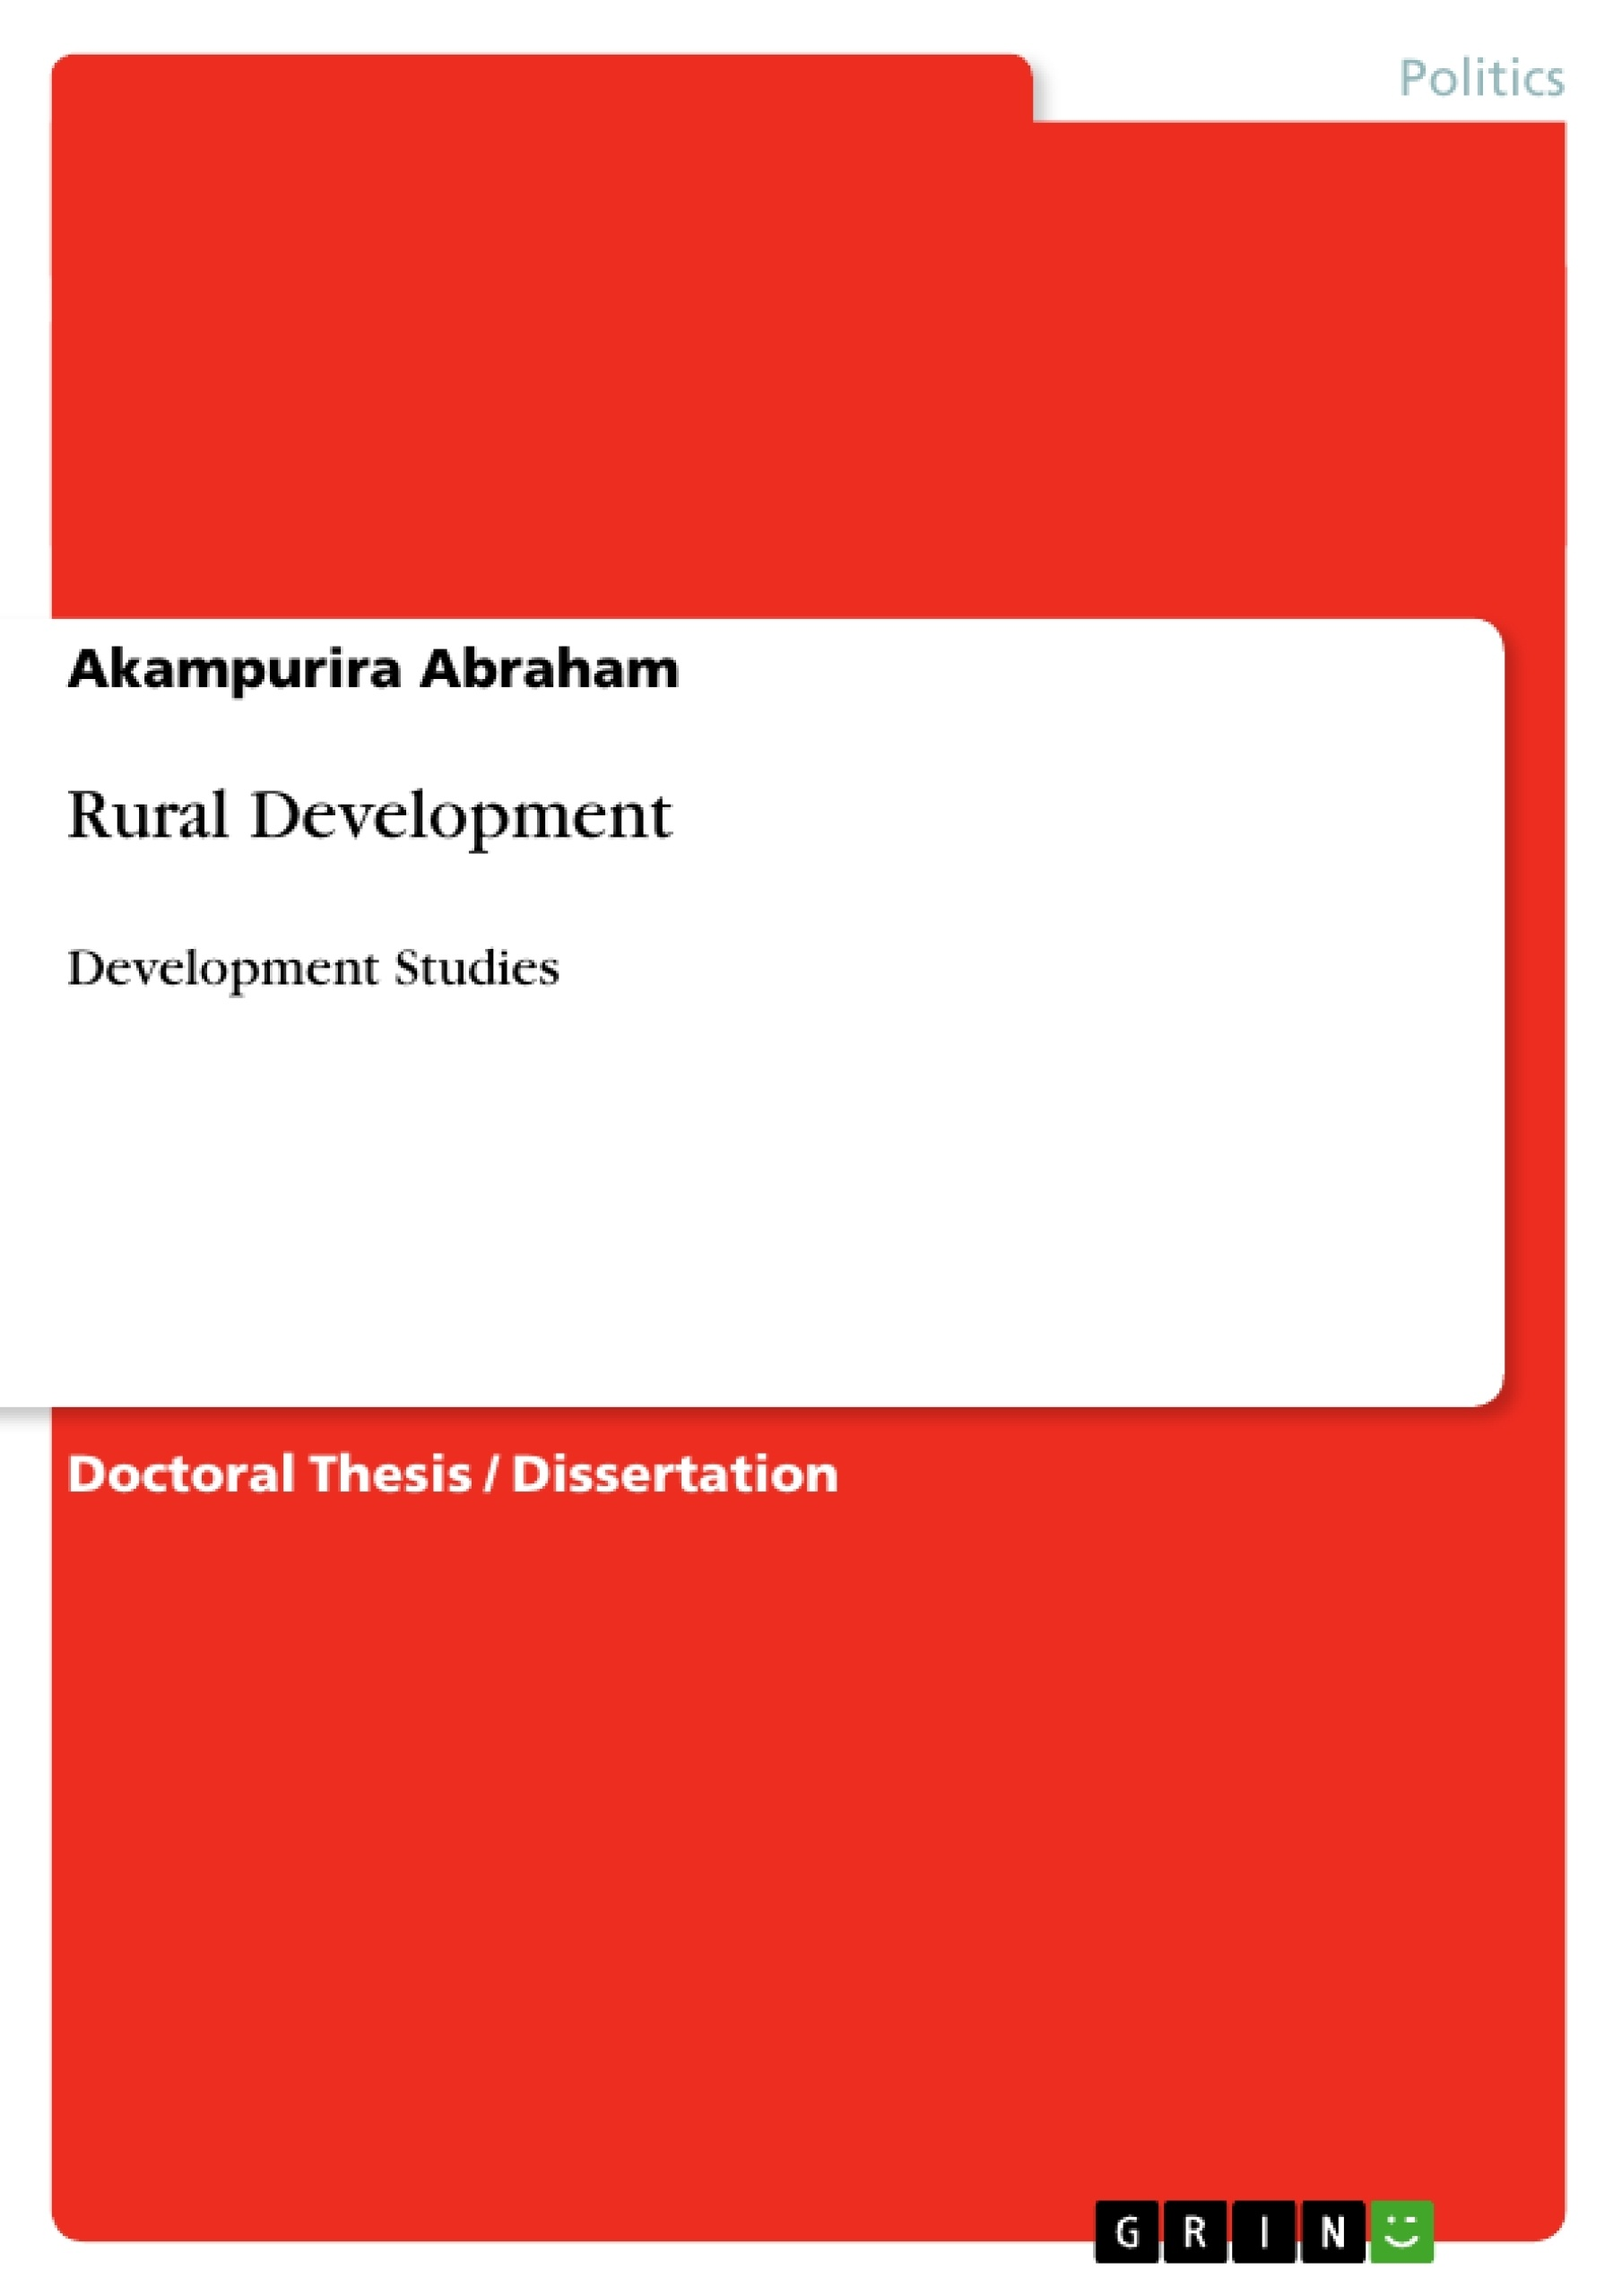 africa development economy essay in in philosophy political public study Africa development economy essay in in philosophy political public study sujet de dissertation sur le financement de l' conomie 12 page essay many words argumentative essay on bribery and corruption in nigeria sammendrag hvordan skrive essay 3 differences between buddhism and hinduism.